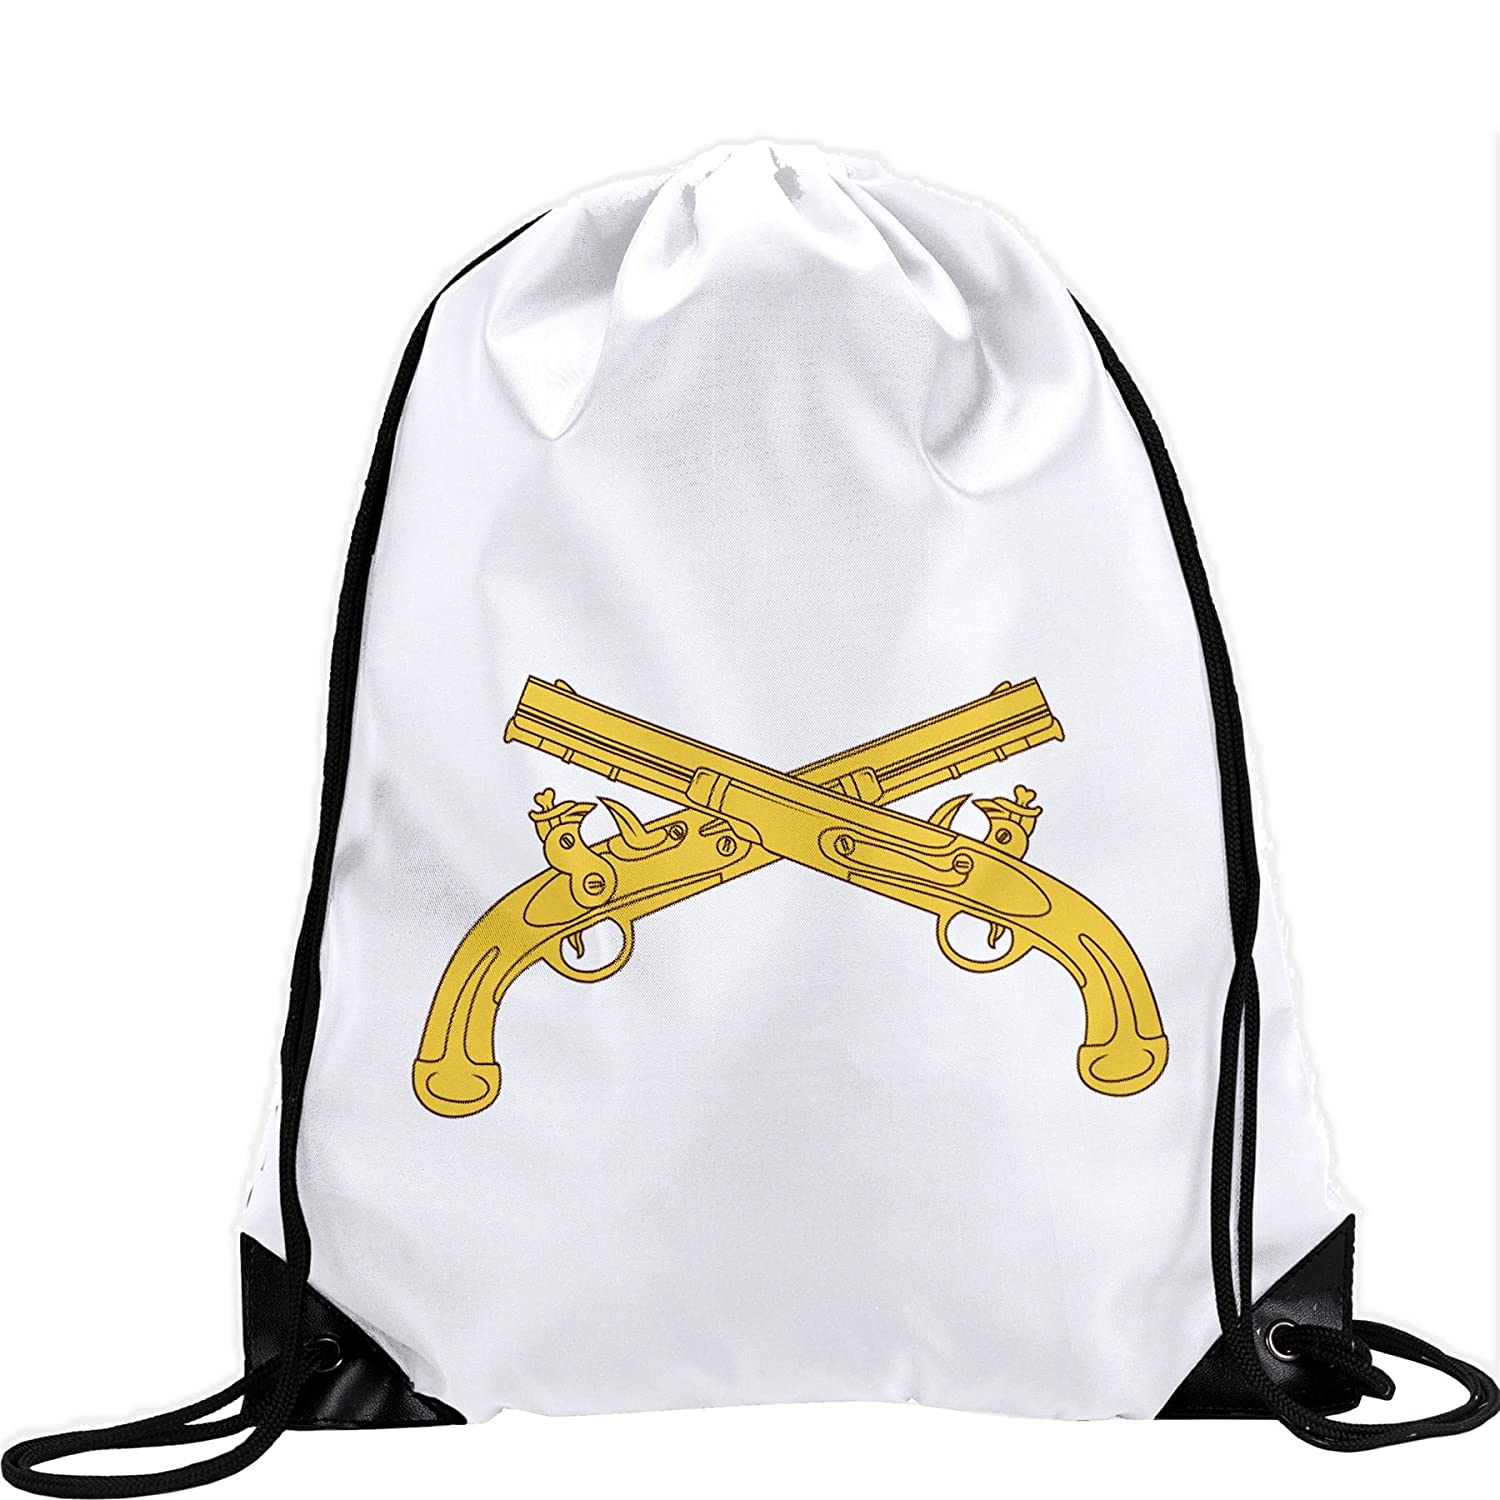 Large Drawstring bag with US Army Military警察隊、ブランチInsignia – Long Lasting鮮やかなイメージ B01AYFHRL0